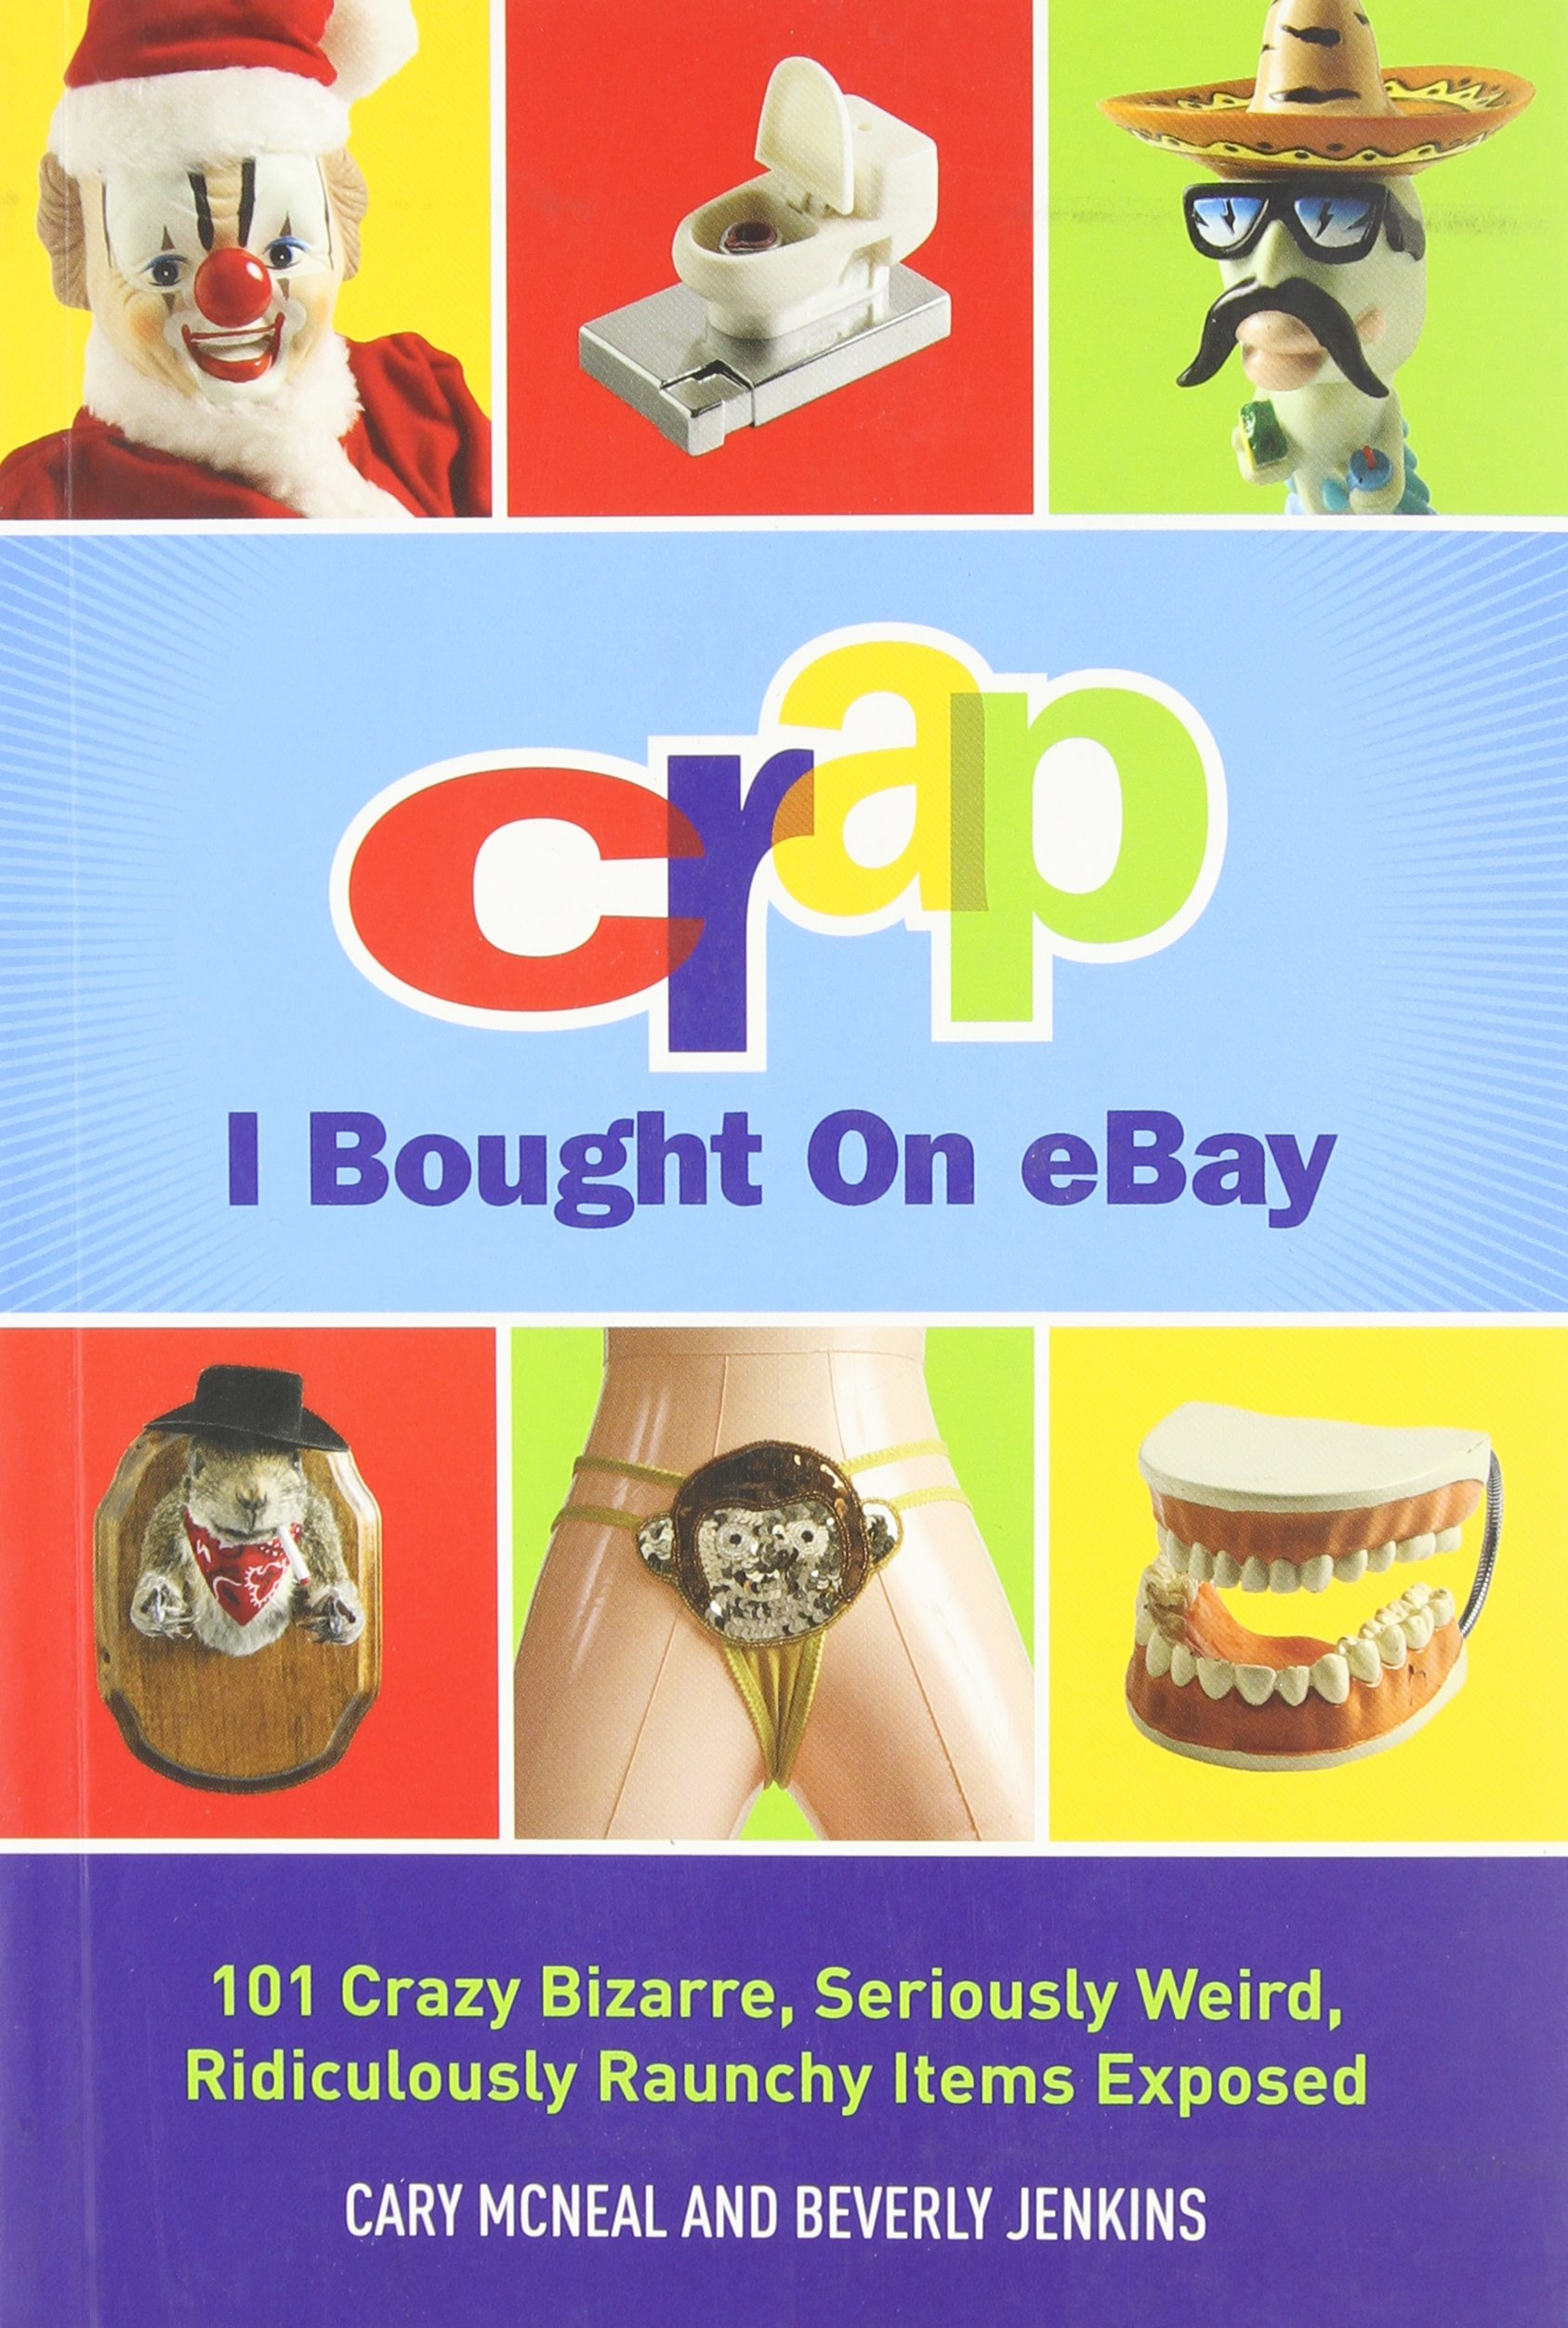 Crap I Bought On Ebay 101 Crazy Bizarre Seriously Weird Ridiculously Raunchy Items Exposed Cary Mcneal Beverly L Jenkins Amazon Com Books